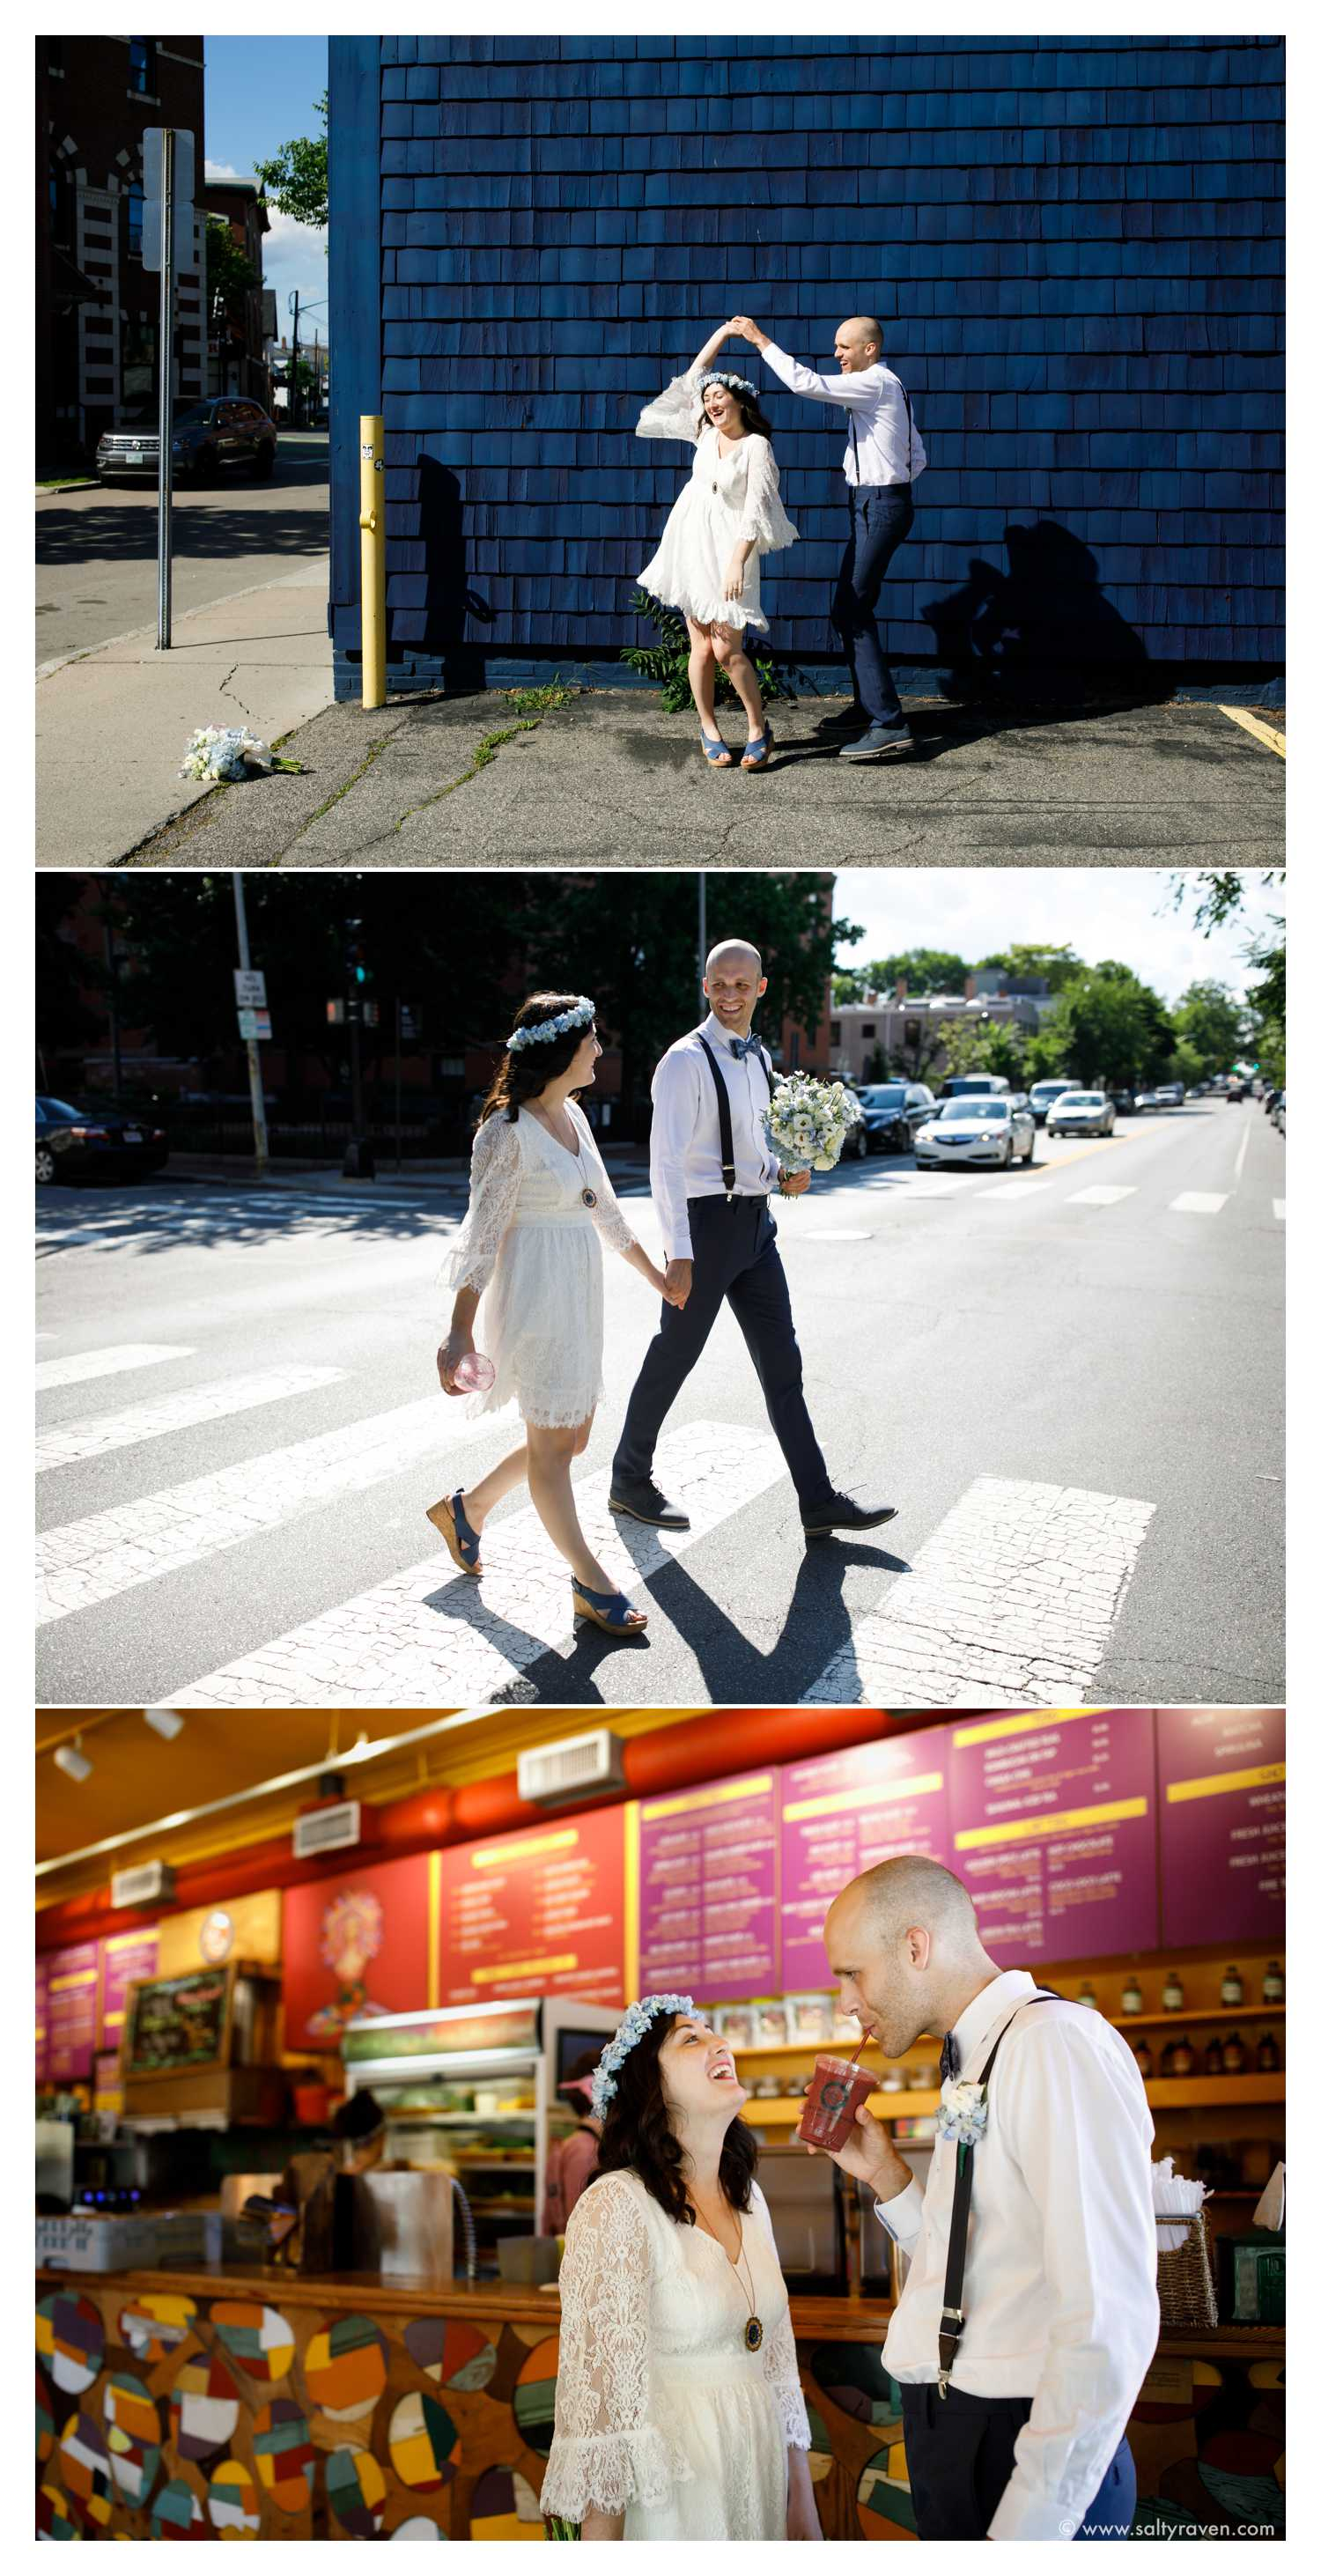 A Cambridge City Hall wedding of a woman in a short white dress and a man in a white shirt. They dance in front of a blue wall, walk across the street in a crosswalk, and then order a smoothie at Life Alive.